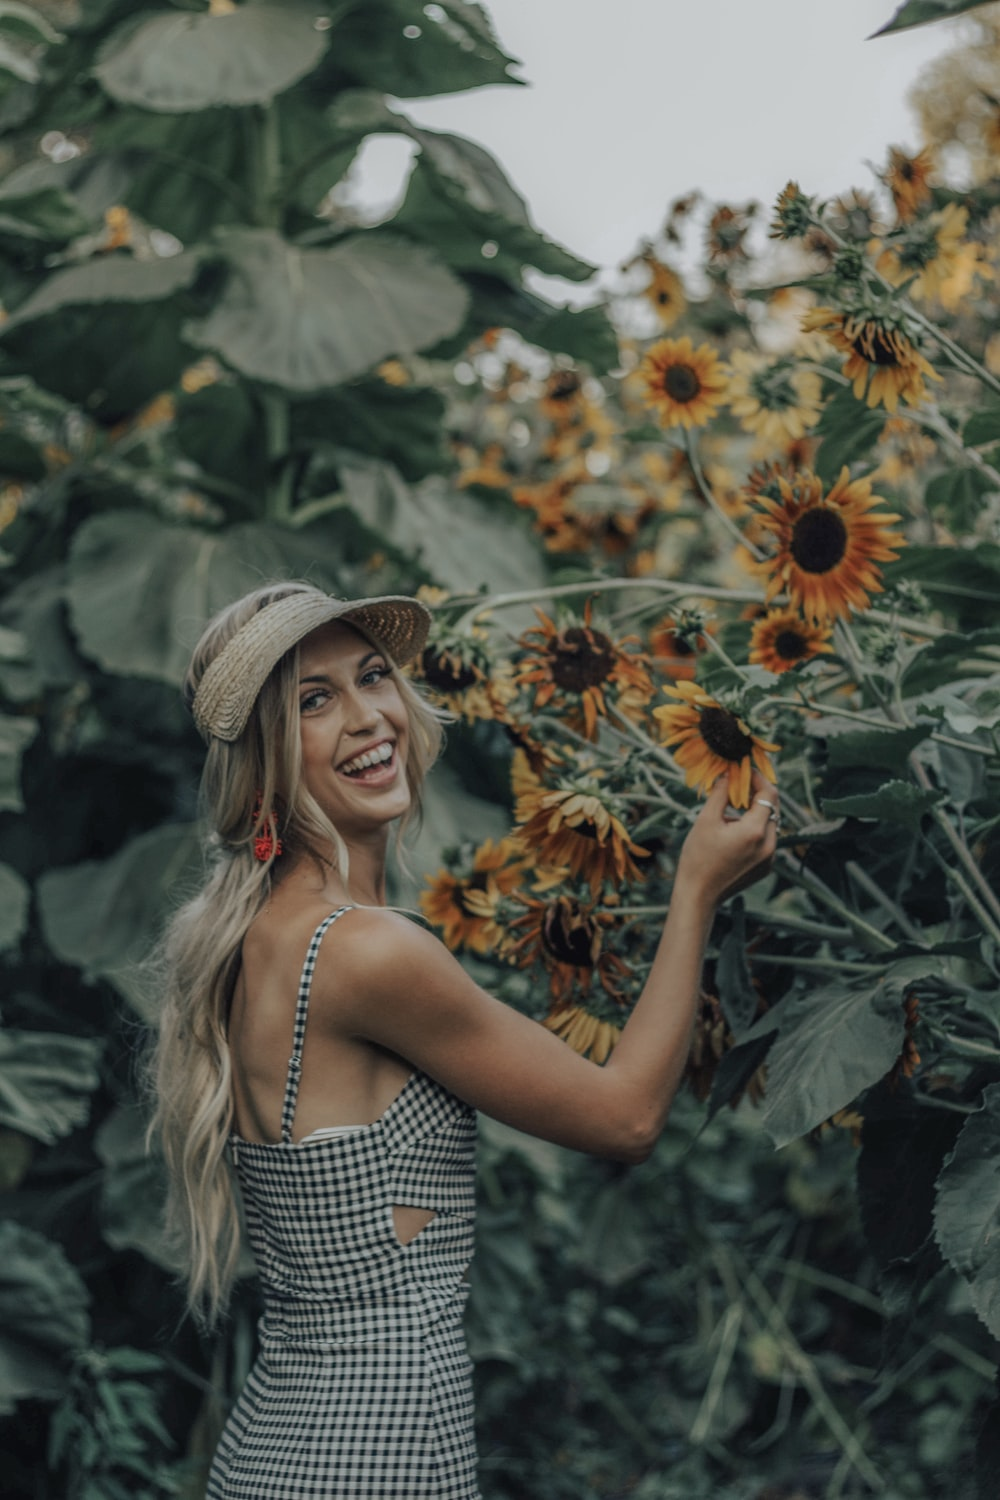 one unknown celebrity smiling while holding sunflower